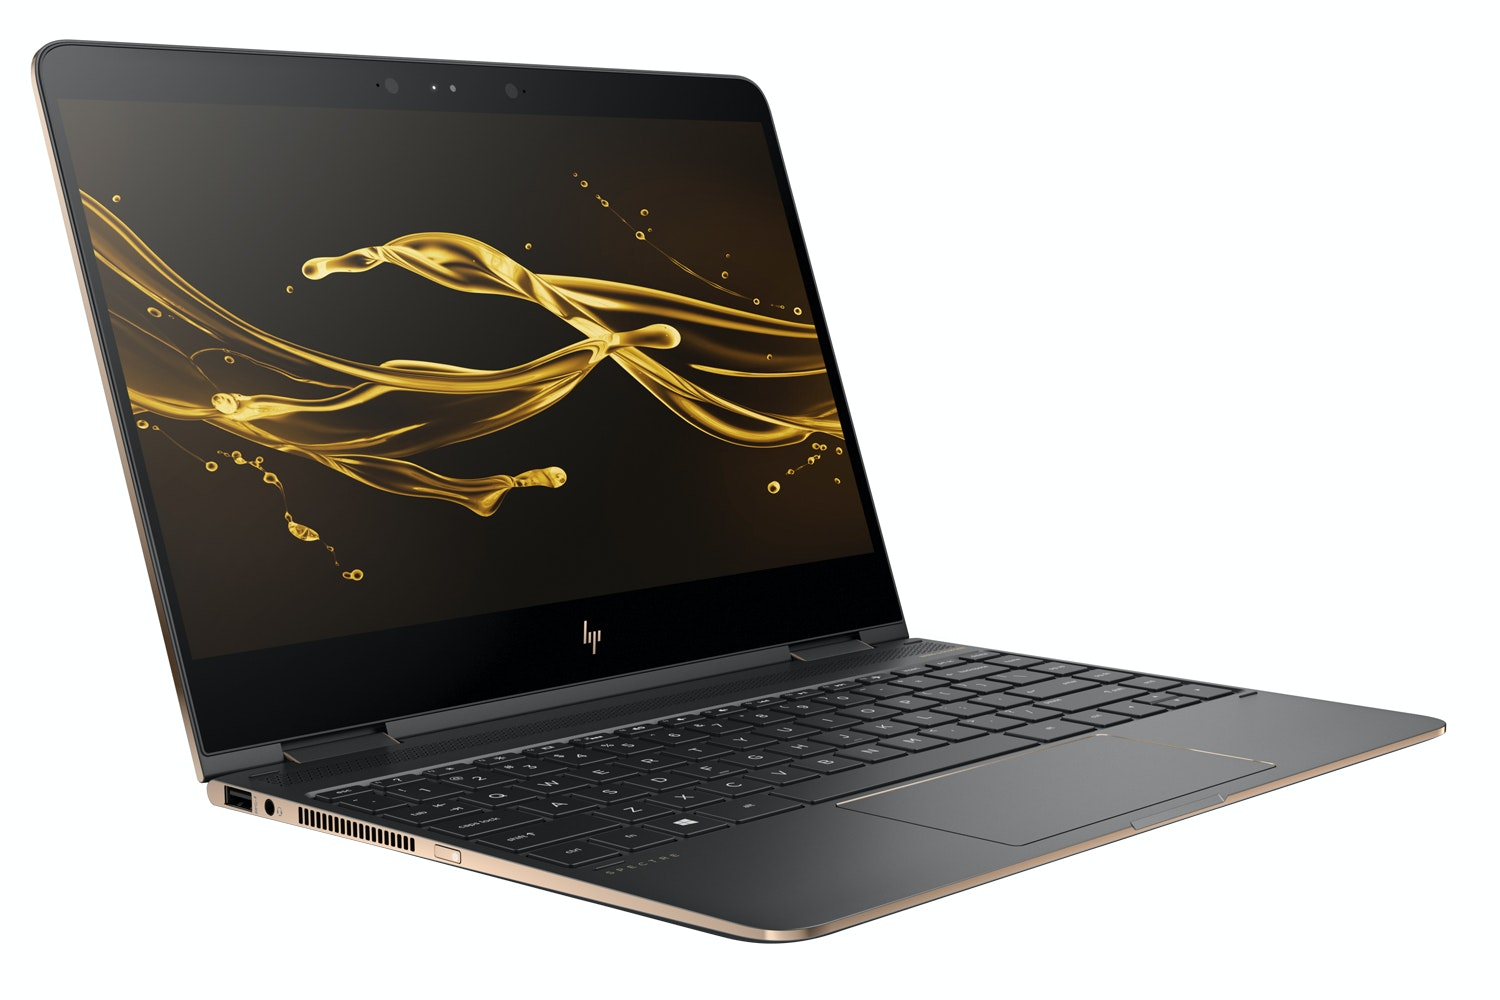 HP Spectre x360 13.3"